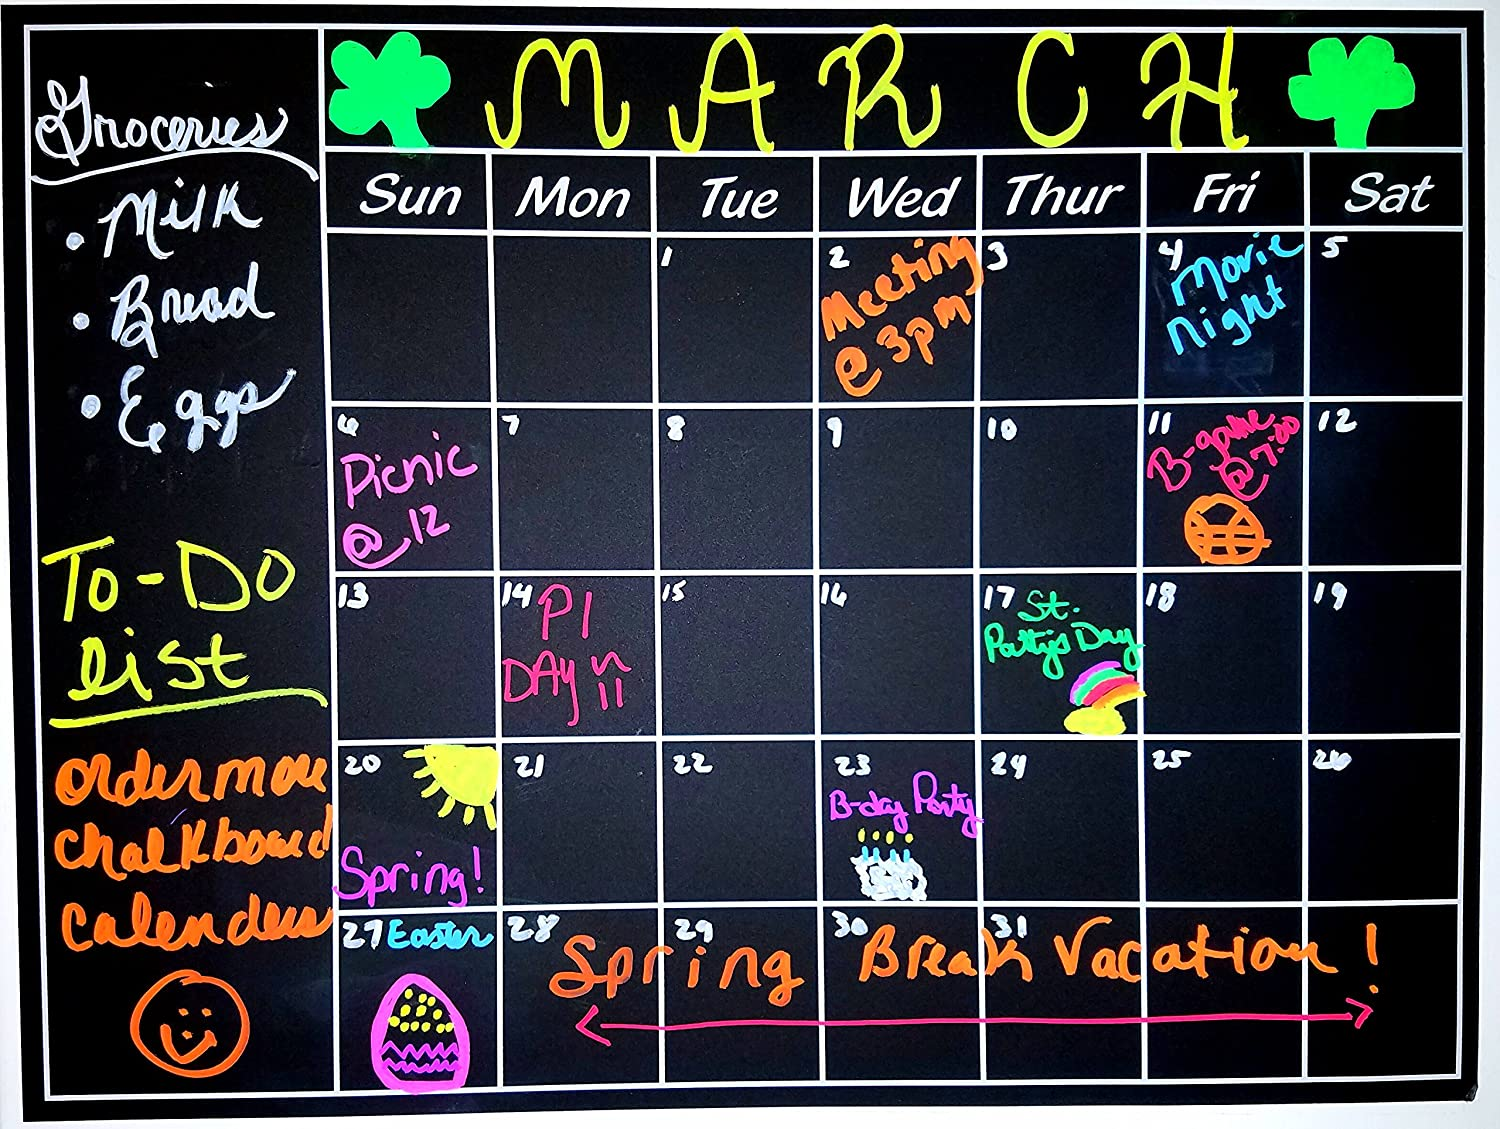 Chalkboard Calendar Sticker Blackboard Monthly Organizer 23.6 inches by 17.7 inches